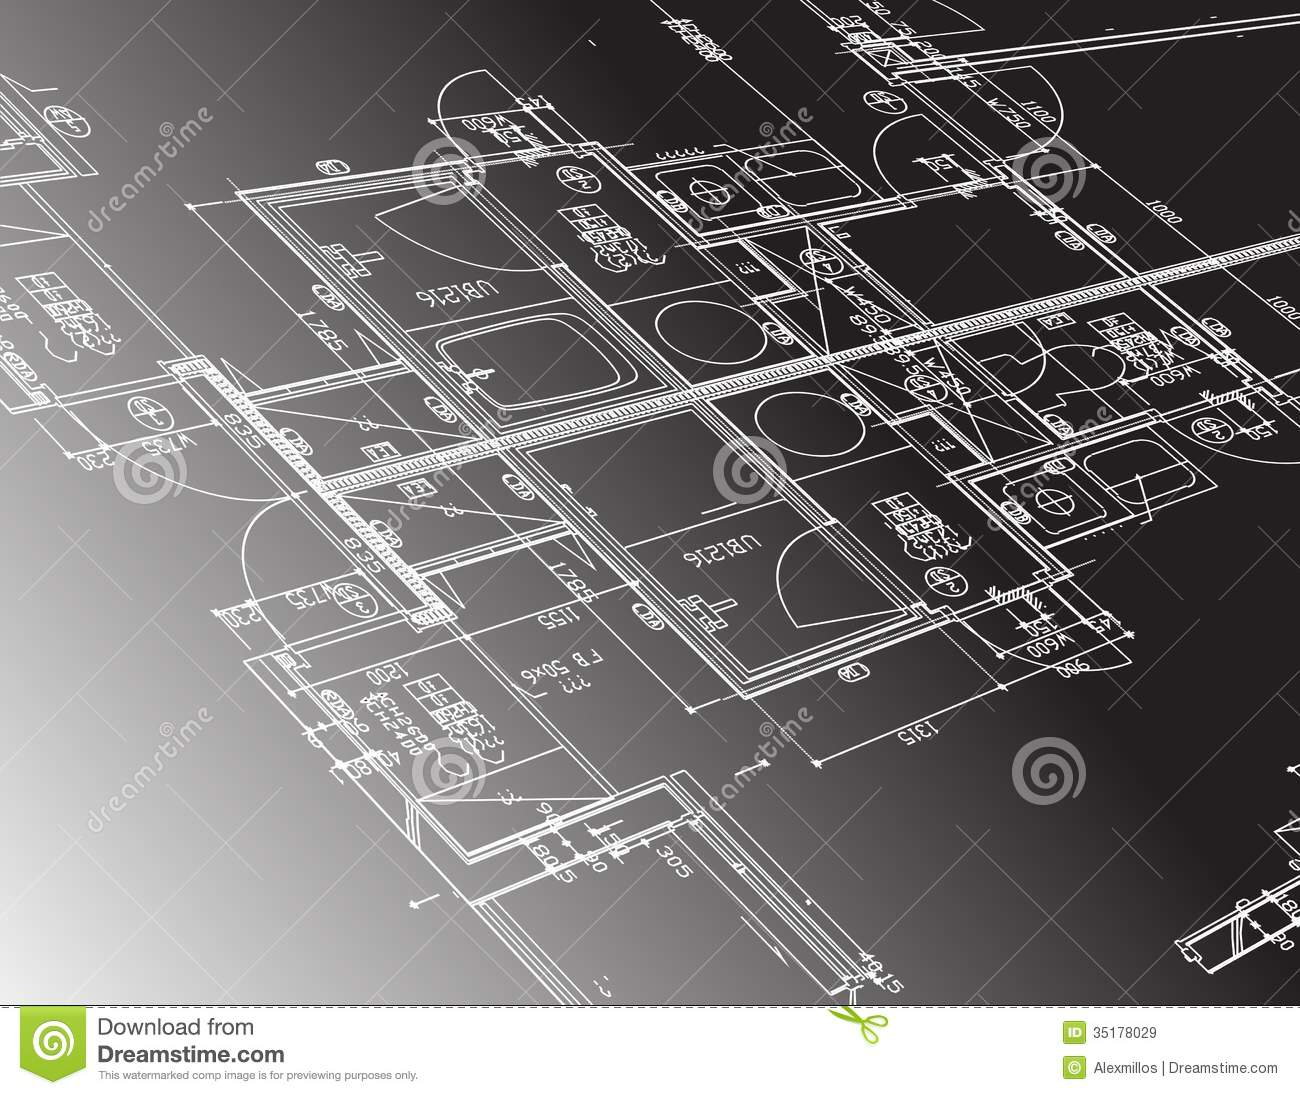 Architecture Design Guide architecture plan guide illustration design royalty free stock